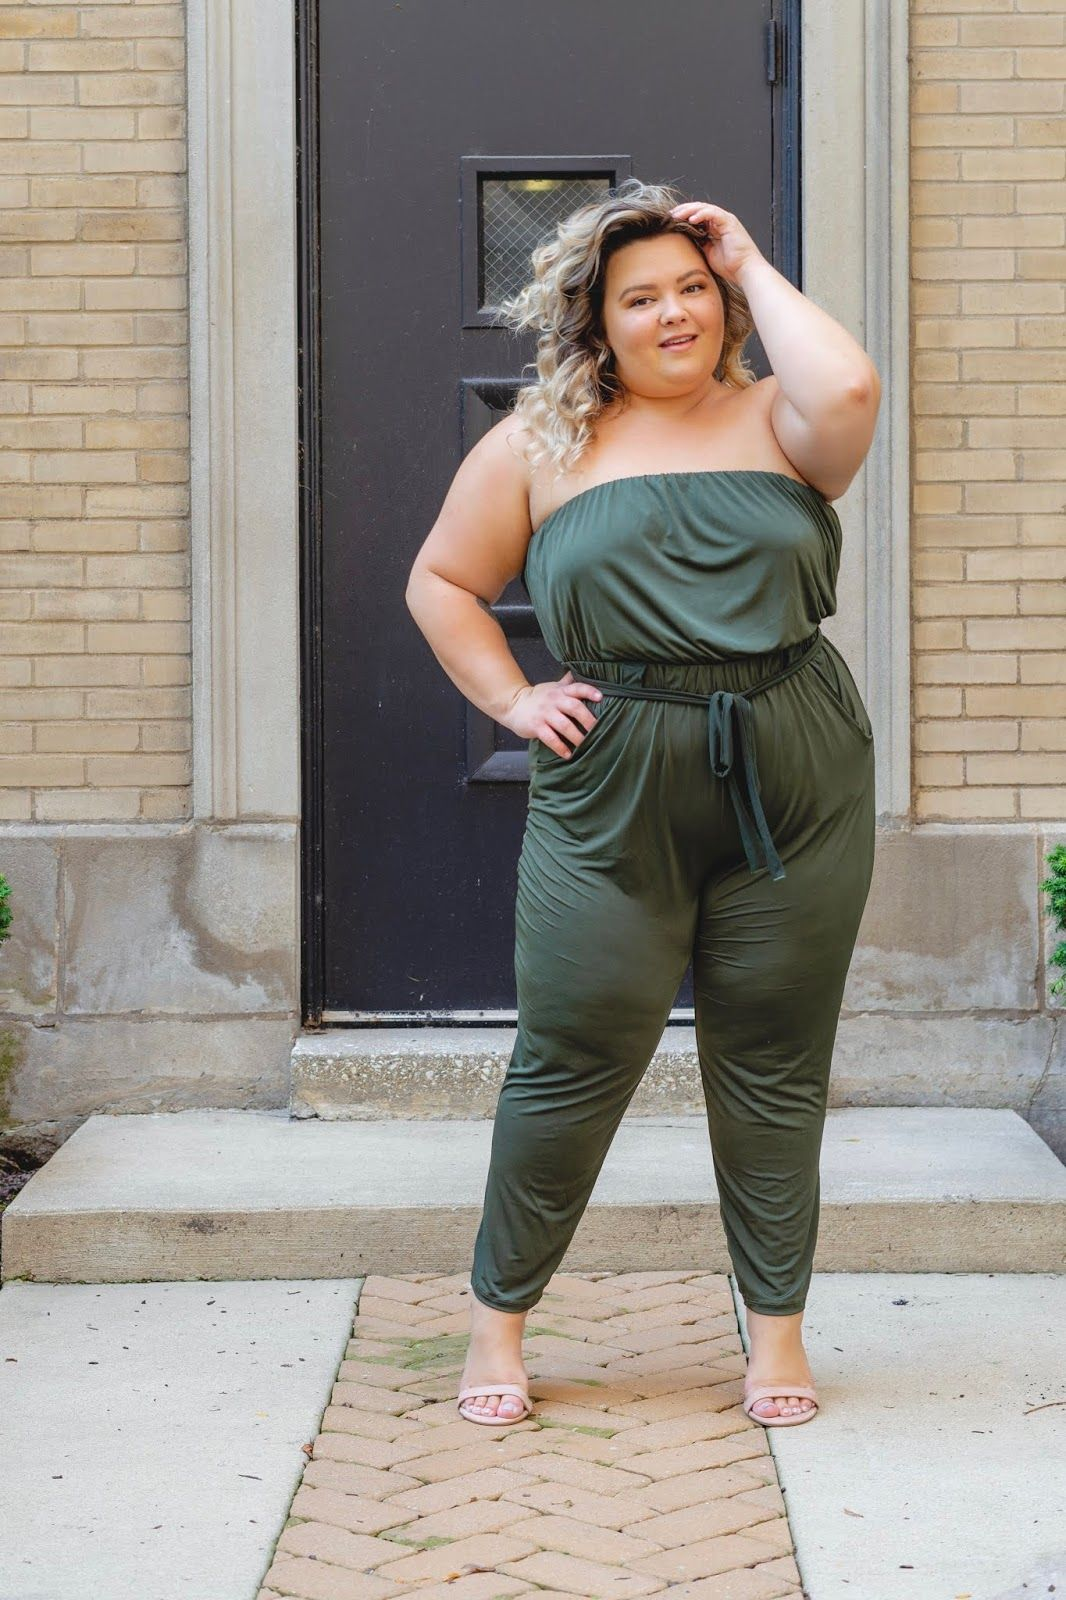 Olive You Natalie In The City A Chicago Plus Size Fashion Blog By Natalie Craig Fashion Nova Plus Size Plus Size Fashion Blog Plus Size Fashion For Women